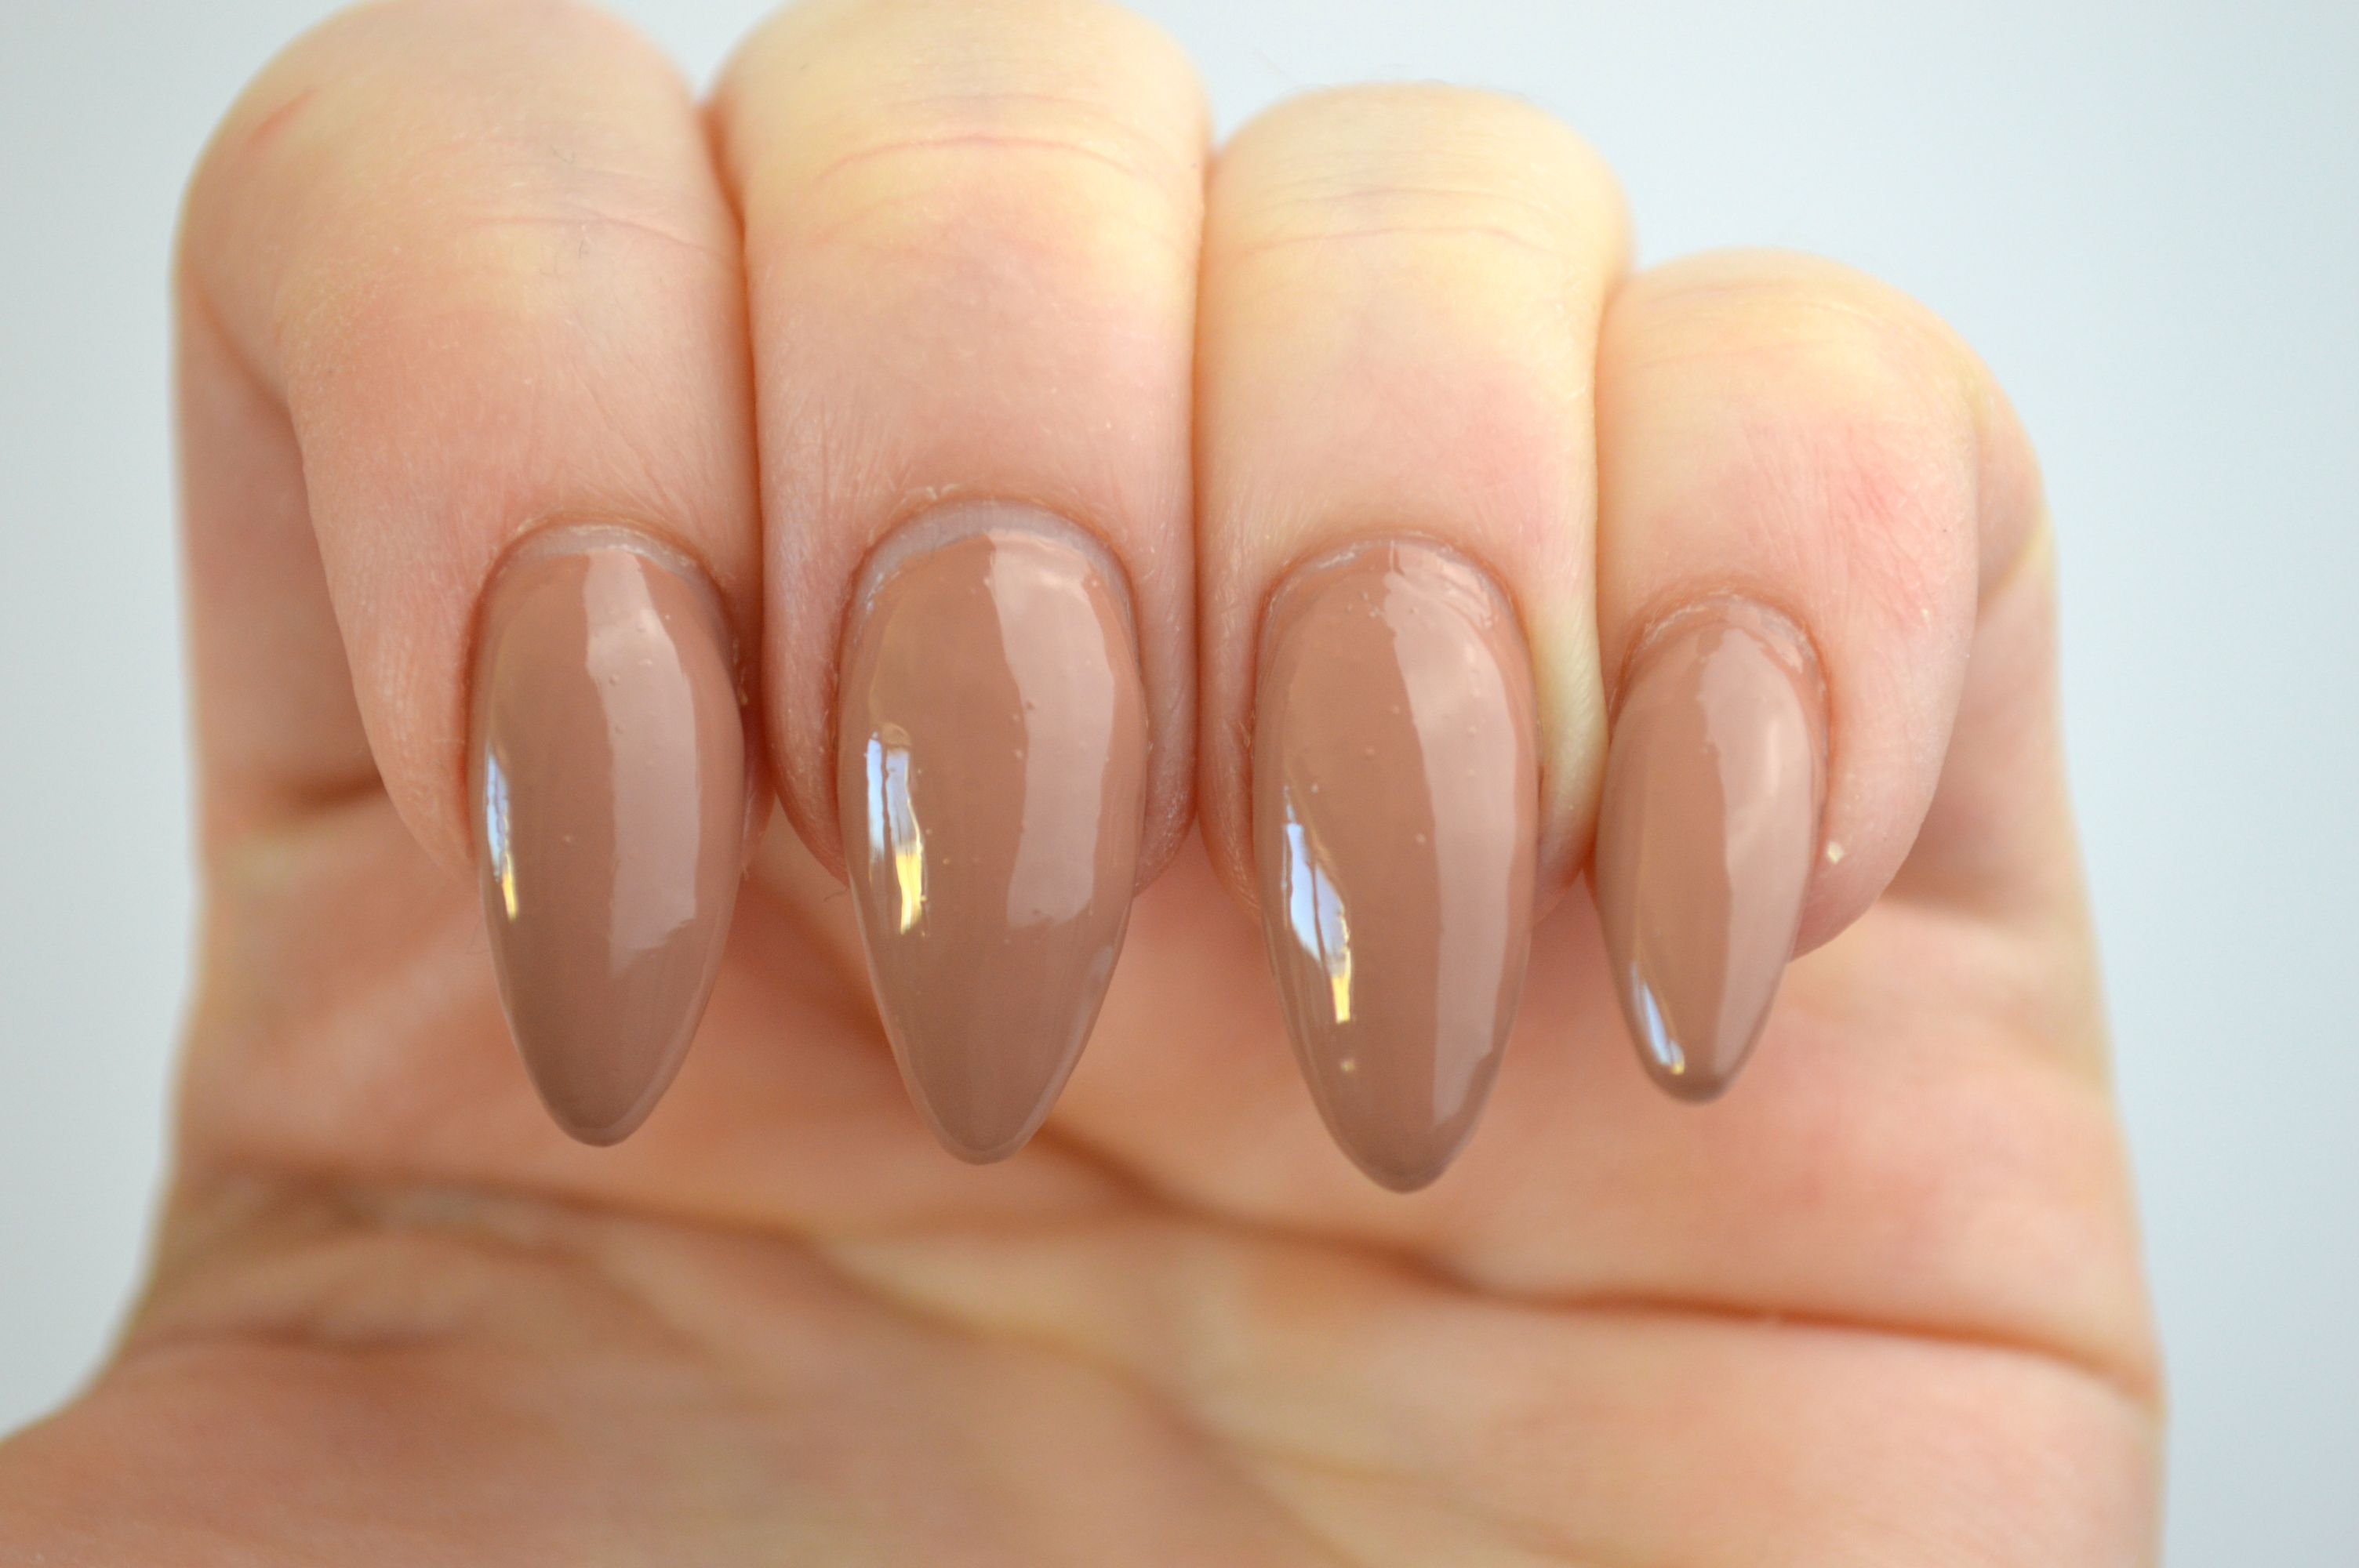 Maybelline_Stripped_Nudes_In_your_flesh_nude